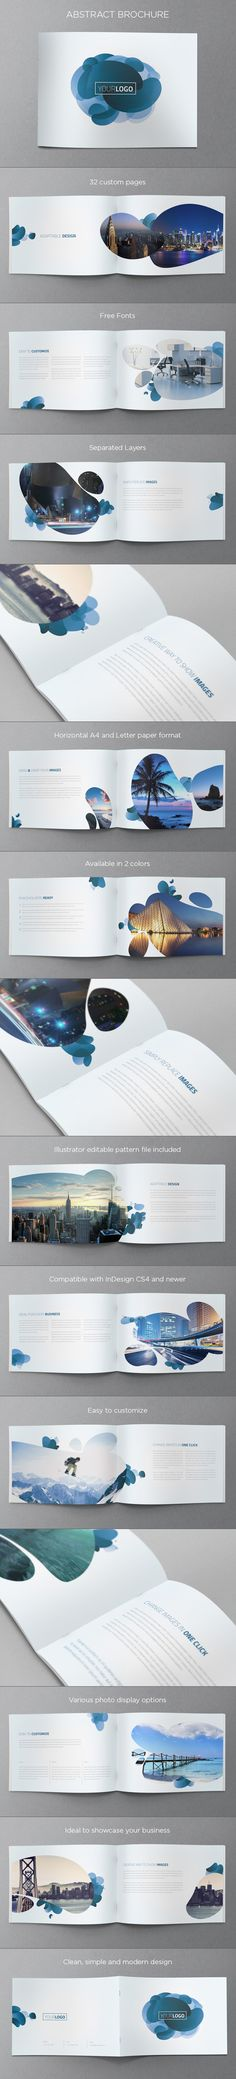 Abstract Modern Brochure. Download here: http://graphicriver.net/item/abstract-modern-brochure/5234402?ref=abradesign #design #brochure